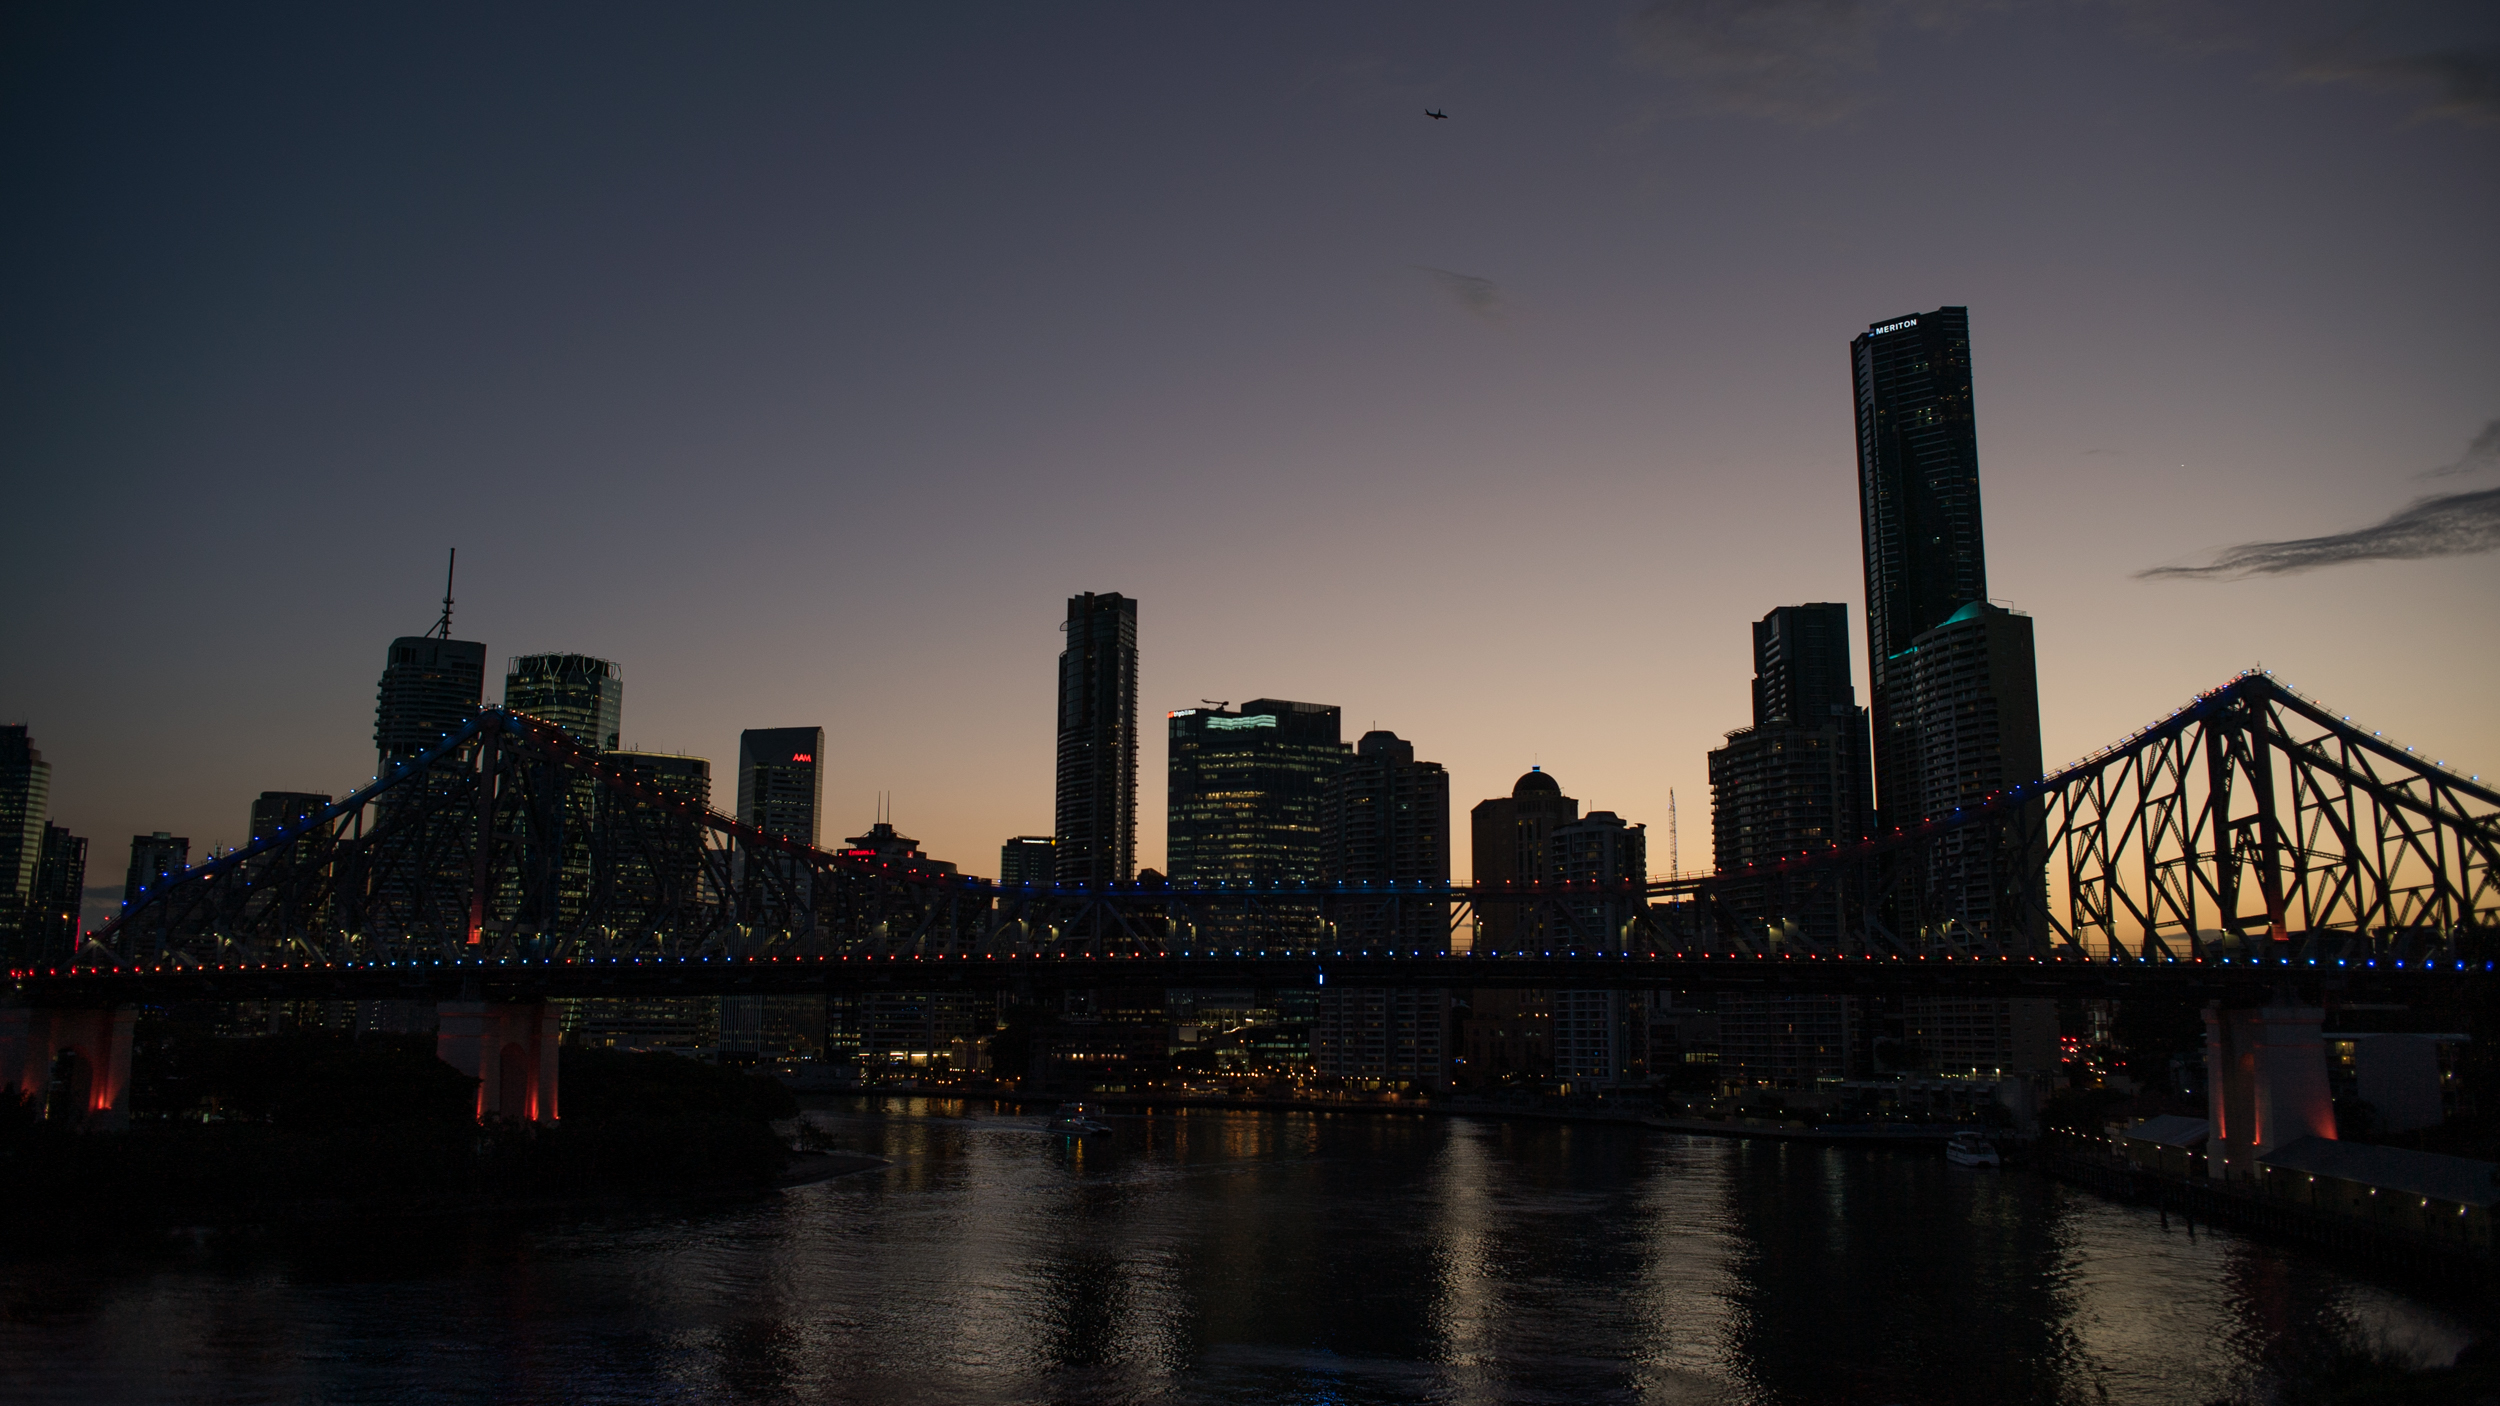 A work by Does - Brisbane australia skyline